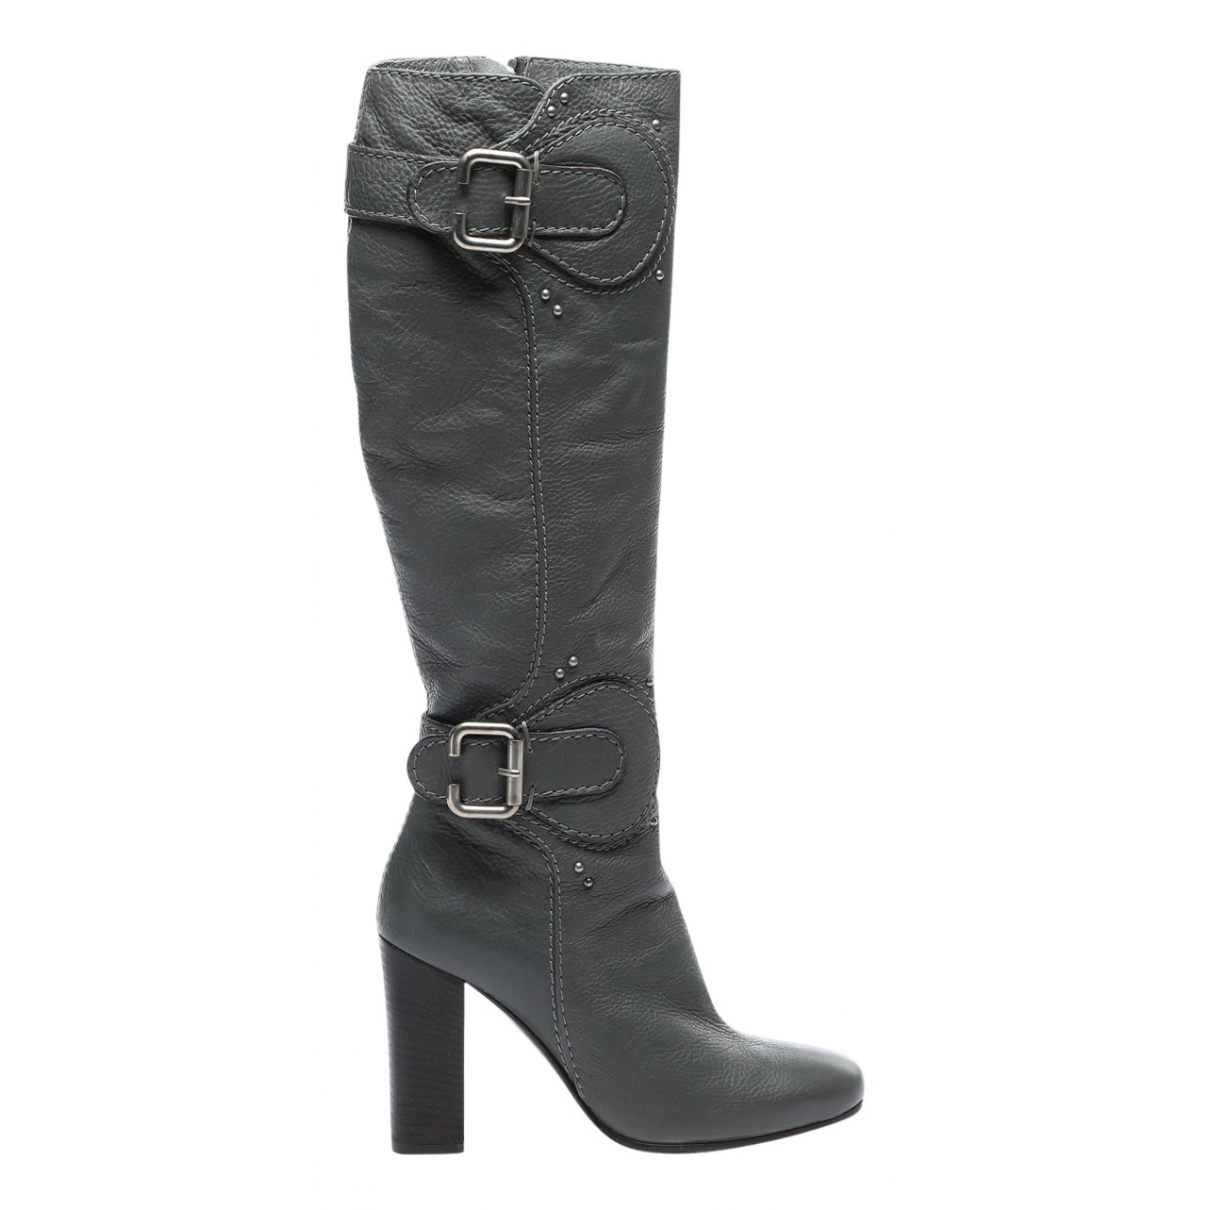 Chloé \N Grey Leather Boots for Women 38.5 EU